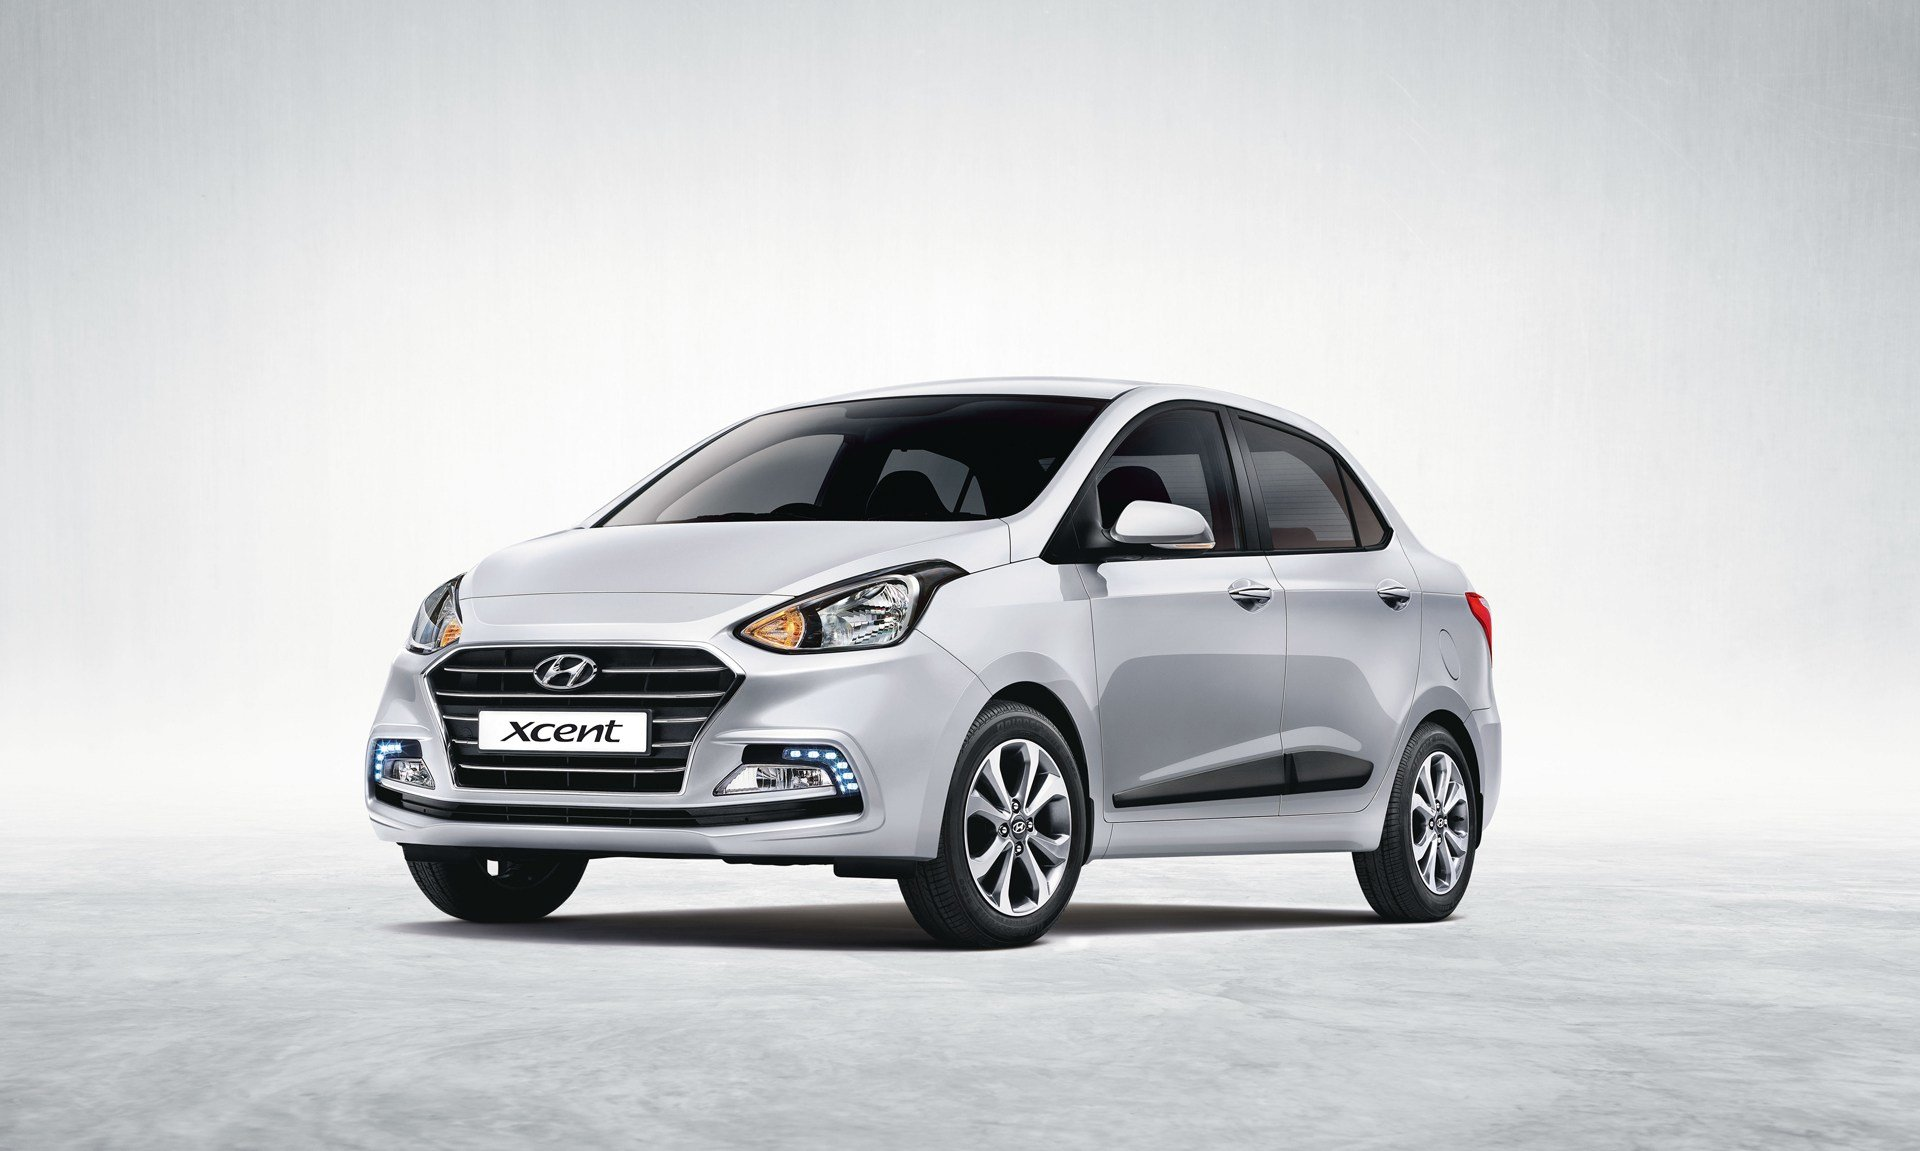 New Hyundai Xcent 2017 E Photos Images And Wallpapers On This Month